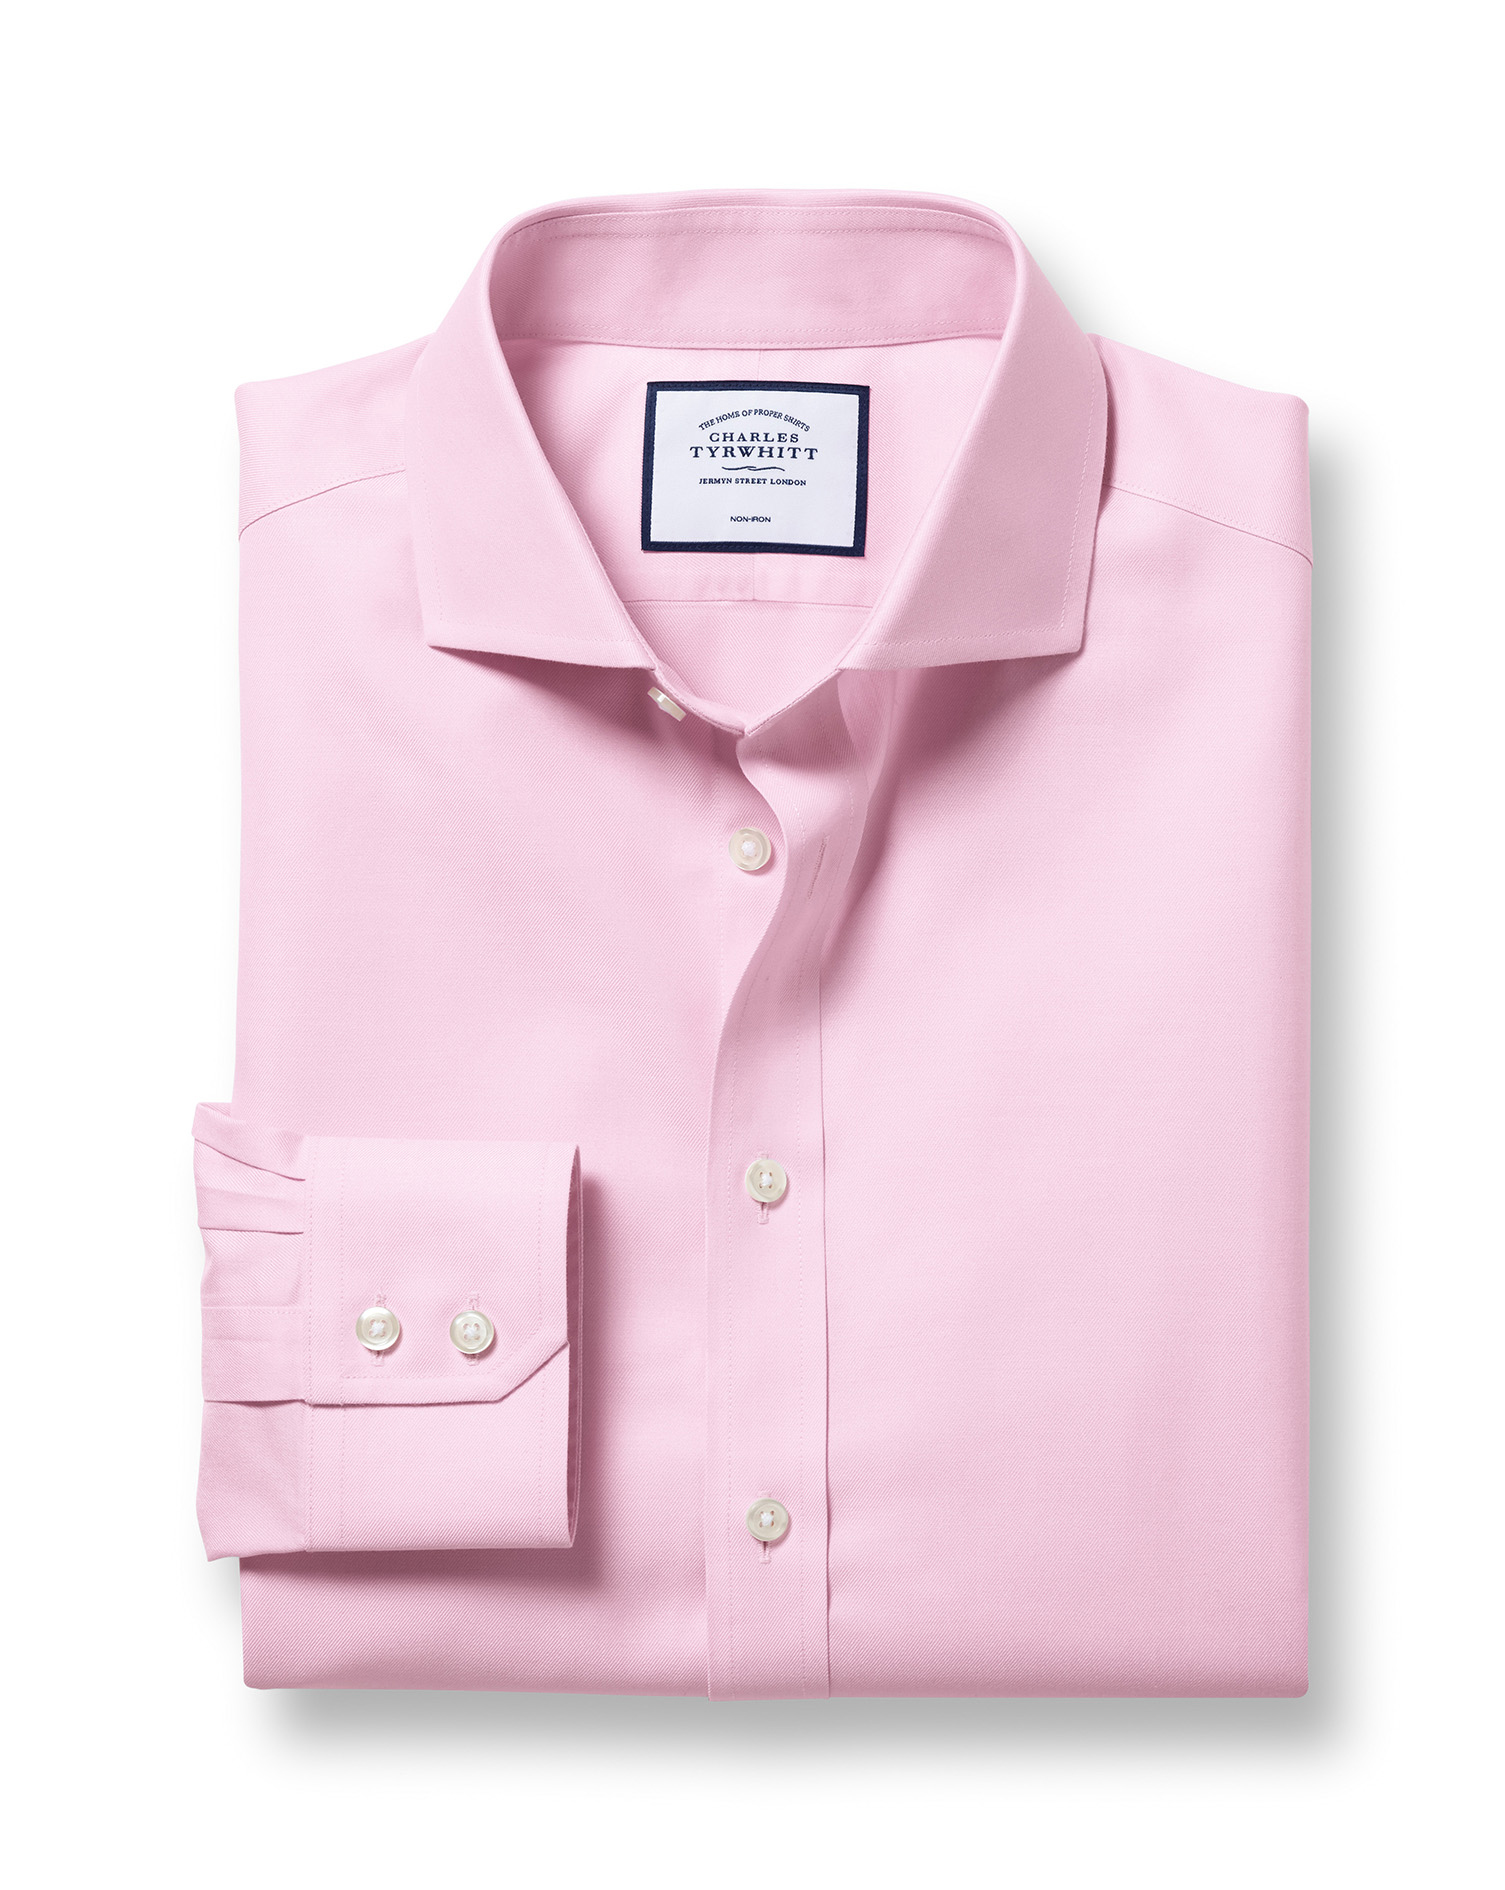 Slim Fit Cutaway Non-Iron Twill Pink Cotton Formal Shirt Single Cuff Size 18/36 by Charles Tyrwhitt